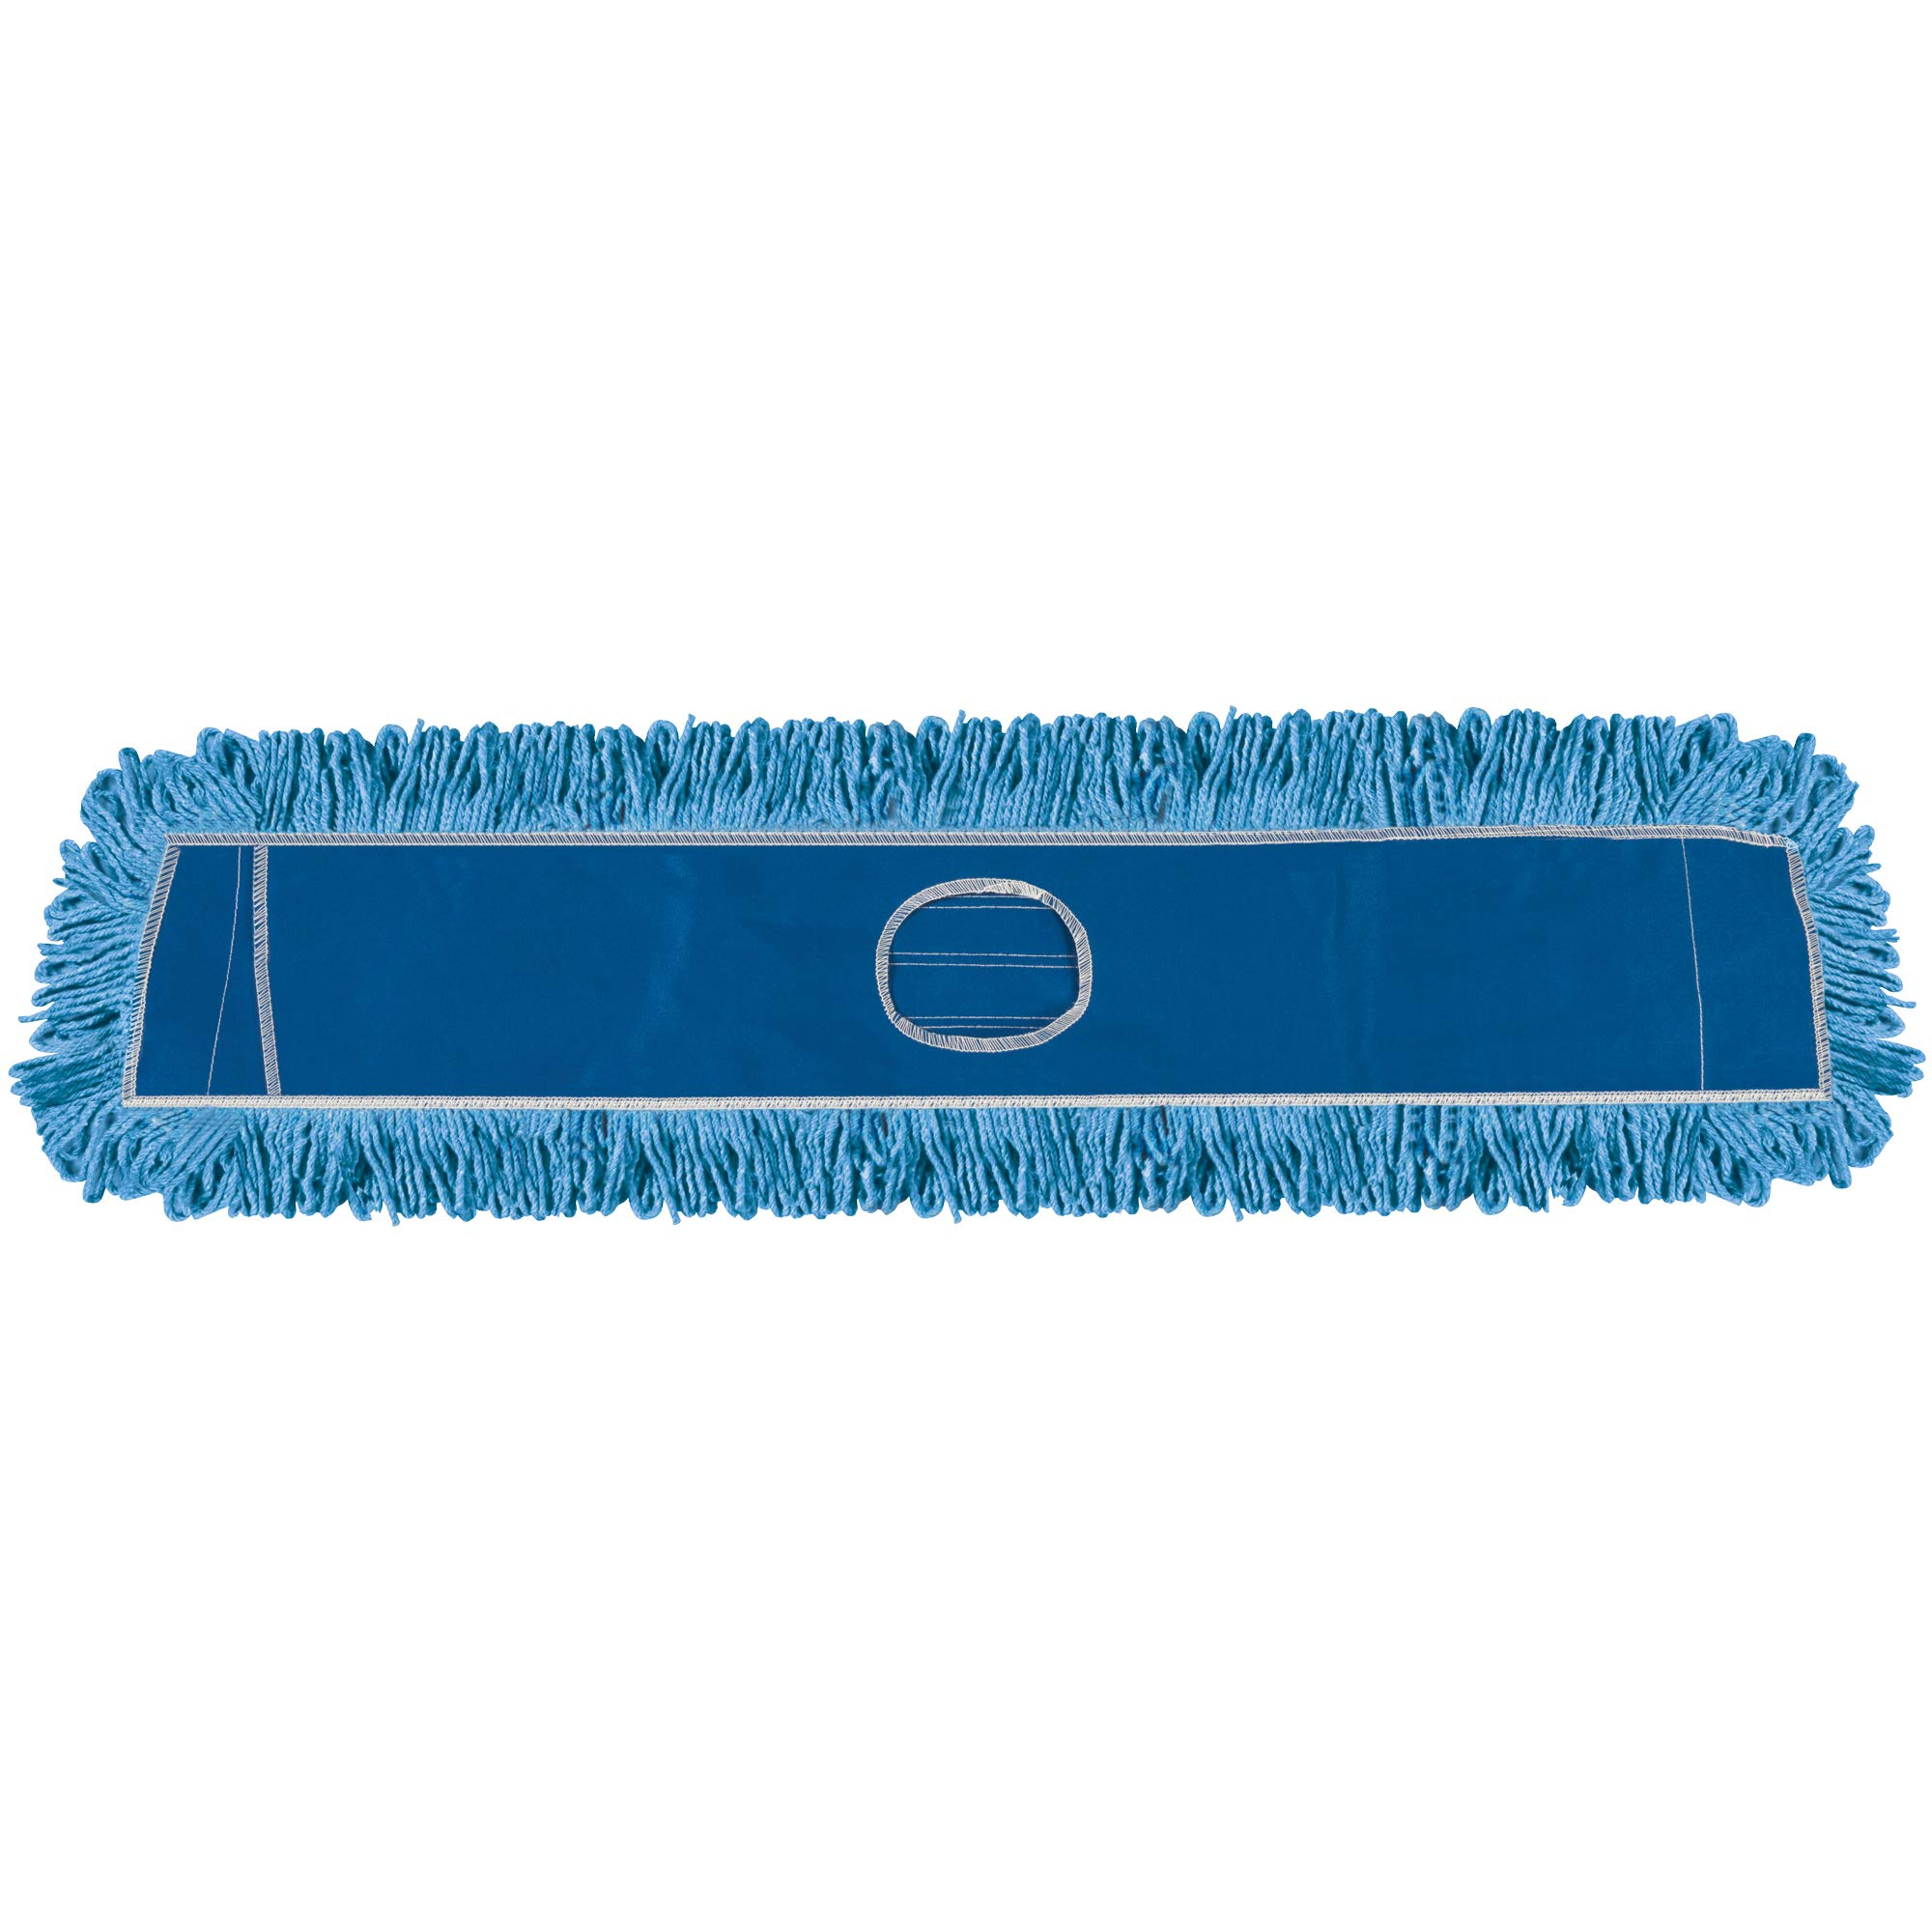 Deluxe Looped-End Dust Mop Head, 36'', Blue, 1/Each by Choice Shipping Supplies